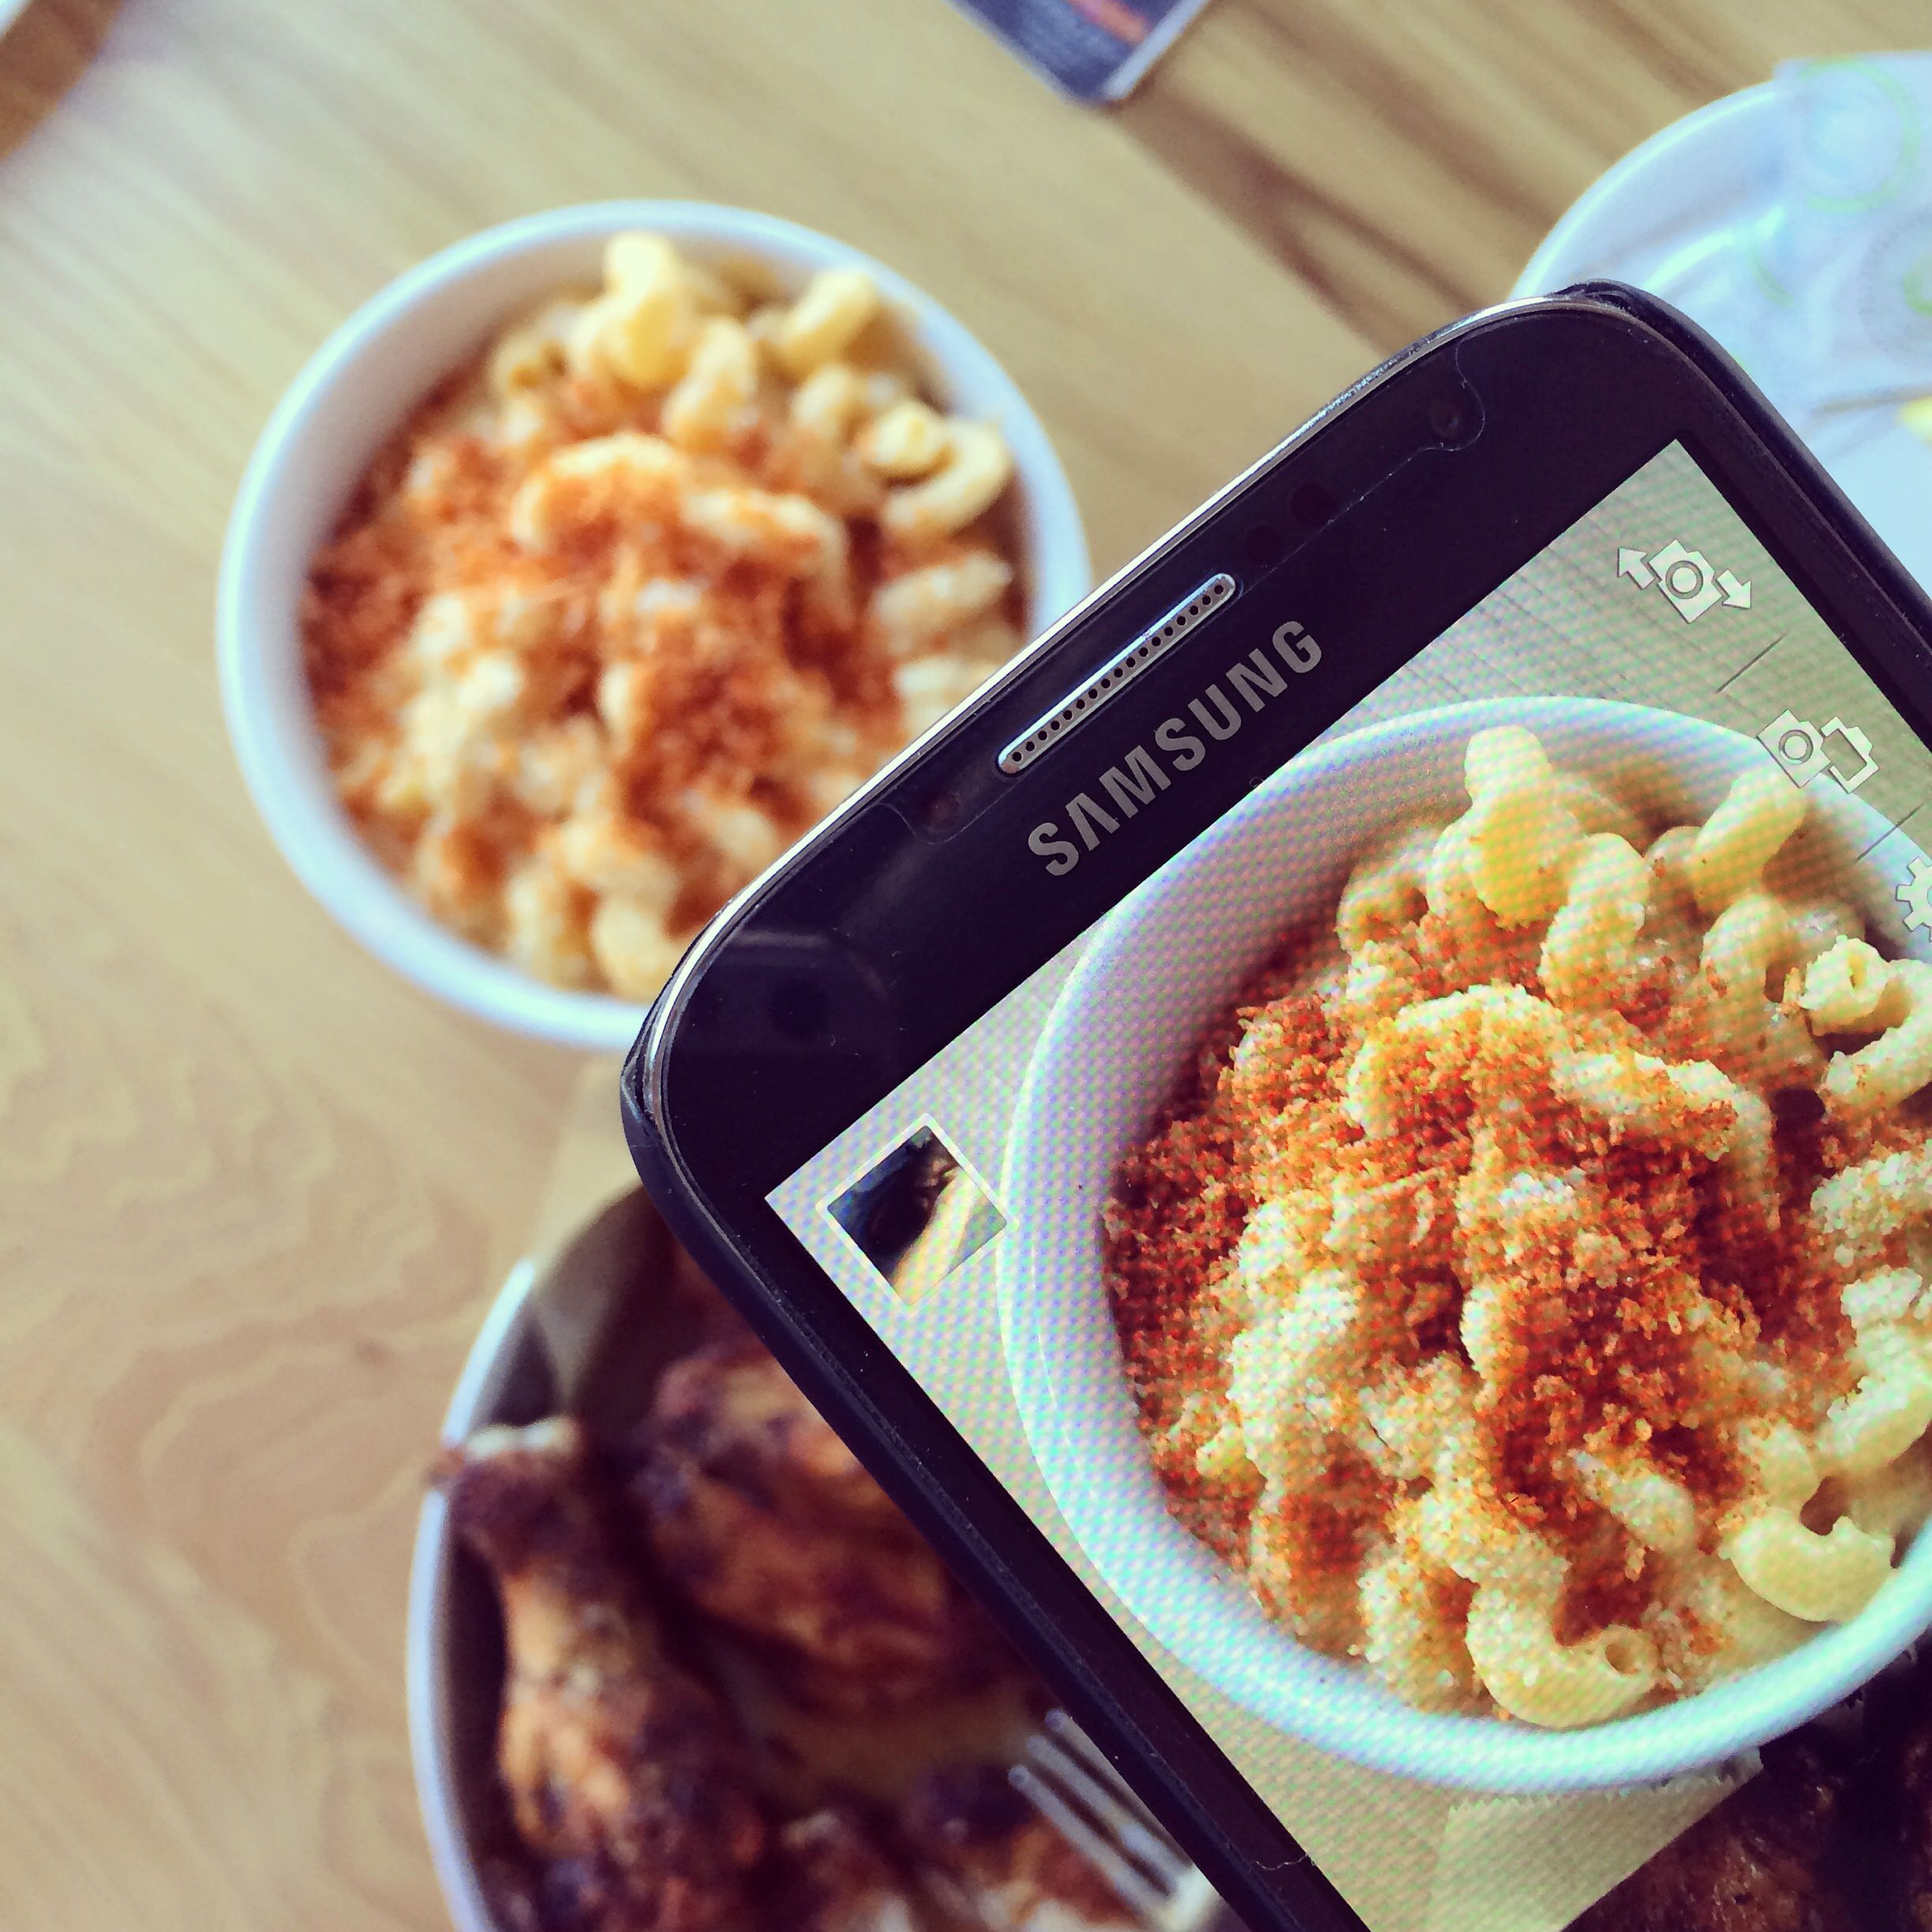 #burgerbar has the BEST Mac and cheese. #macandcheese